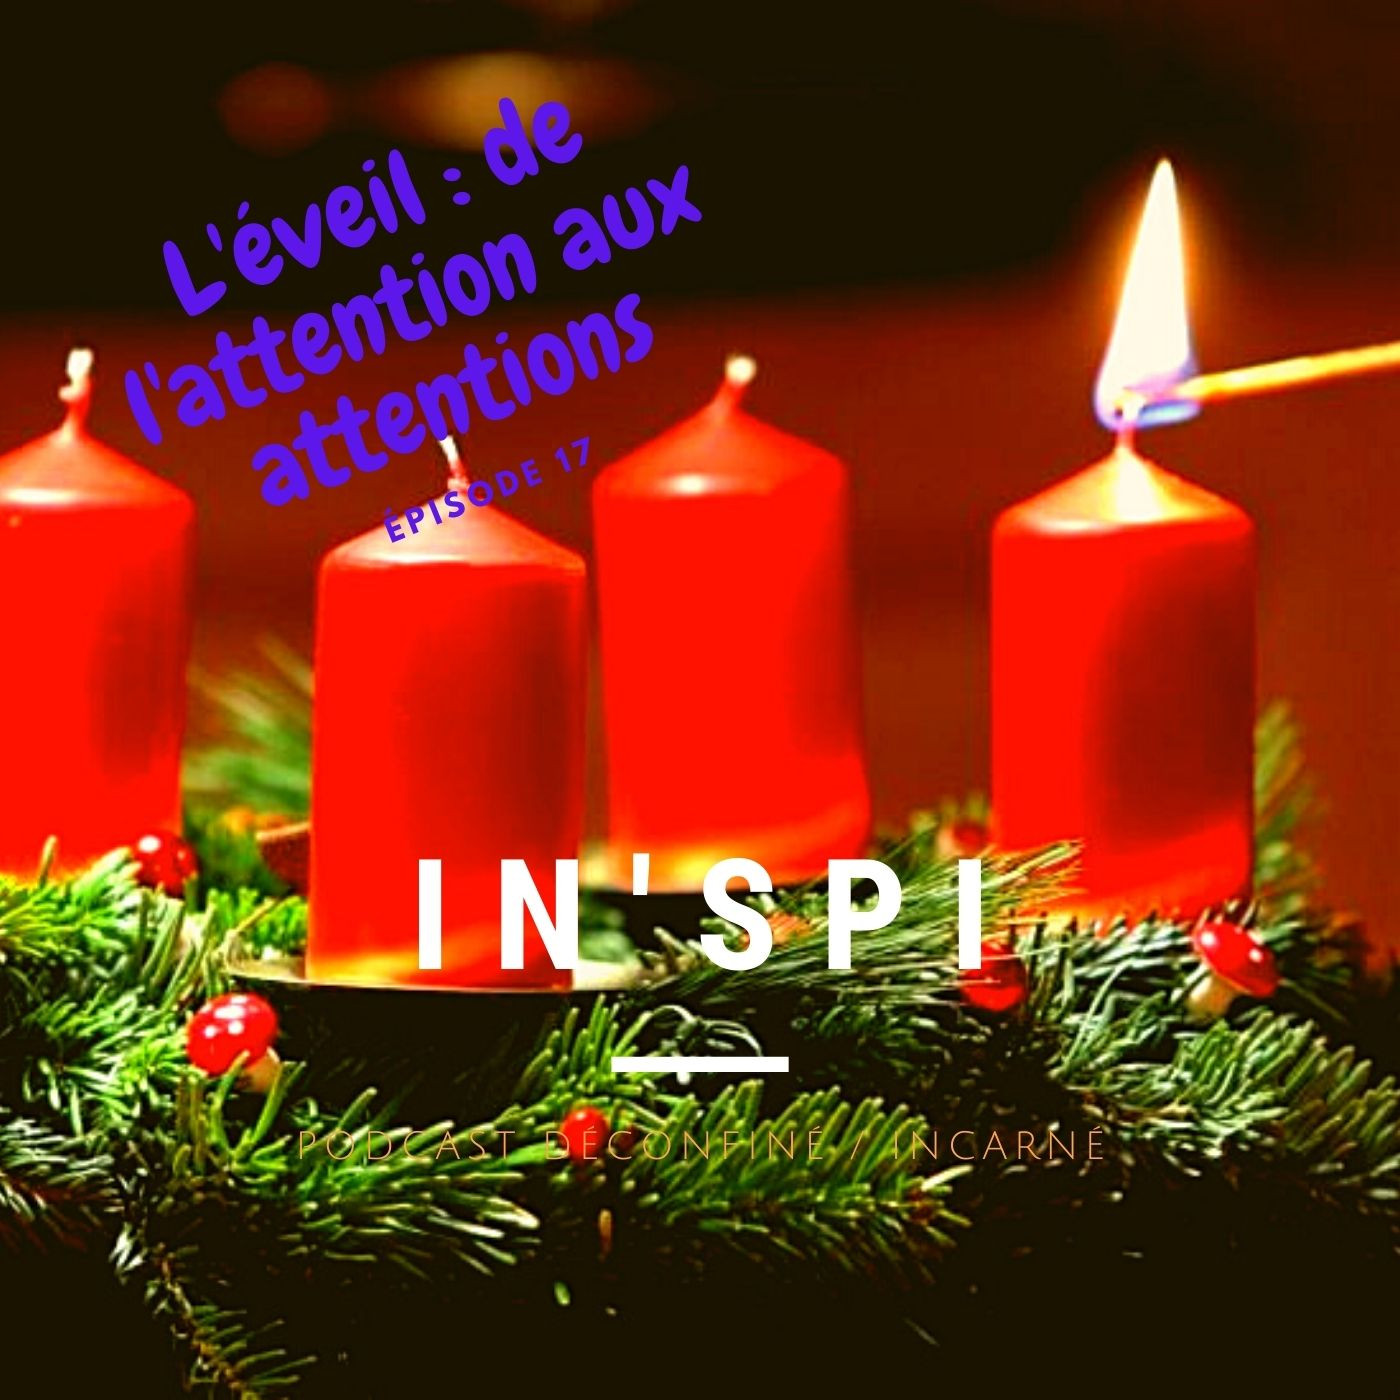 https://medias.podcastics.com/podcastics/episodes/1505/artwork/leveil-de-lattention-aux-attentions-inspi.jpg.083d216270fe87b1cf0b207fa1e23abb.jpg